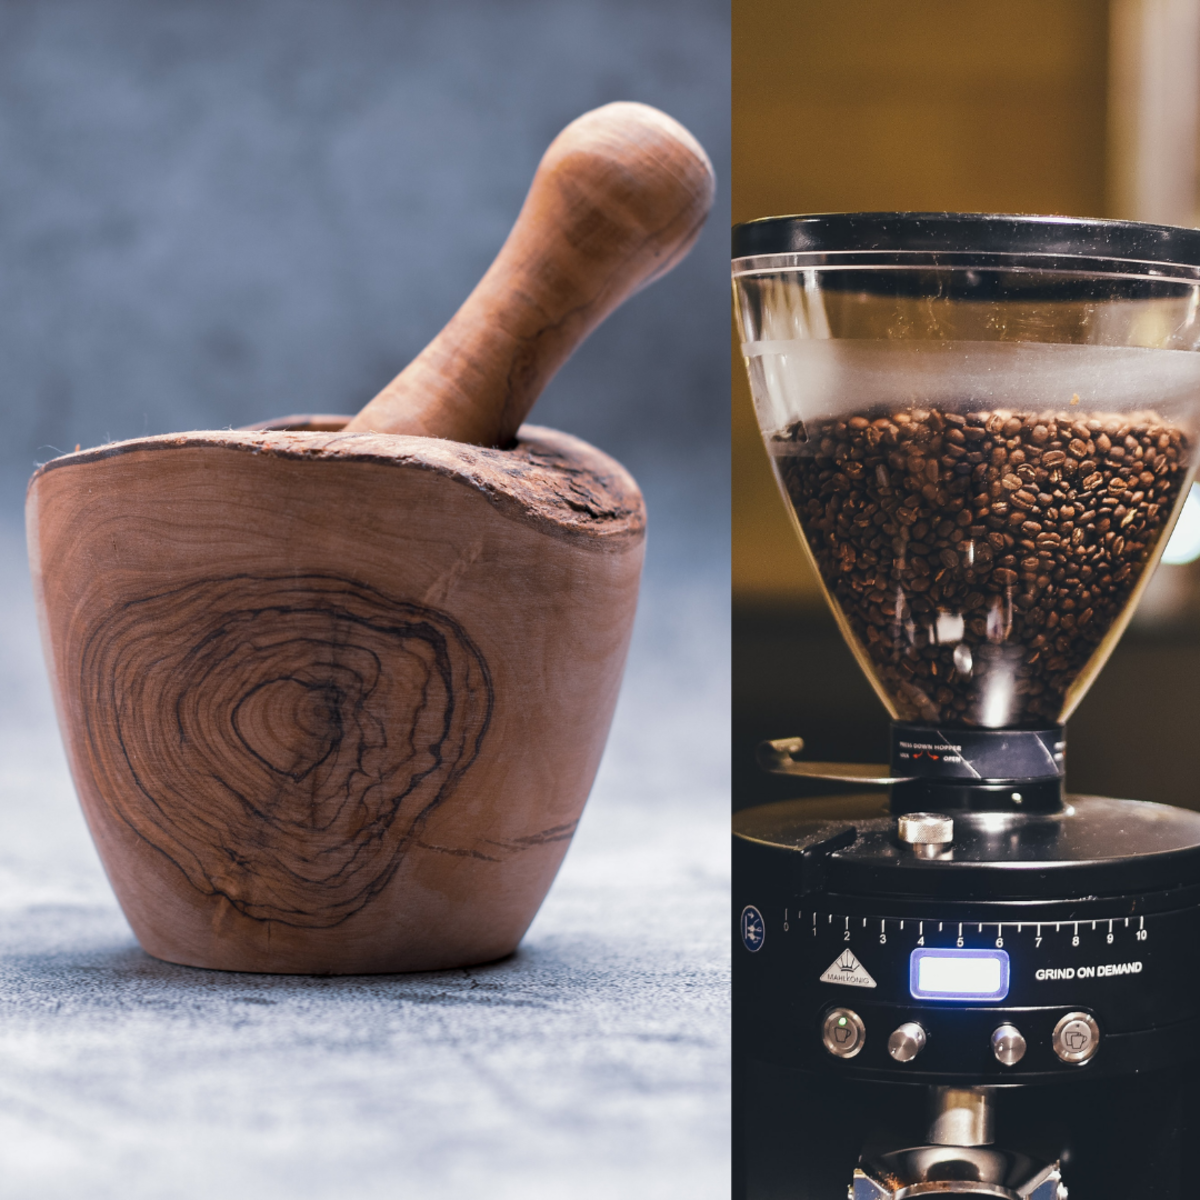 The mortar and pestle and electric coffee grinder are two great tools for grinding or crushing your clay.